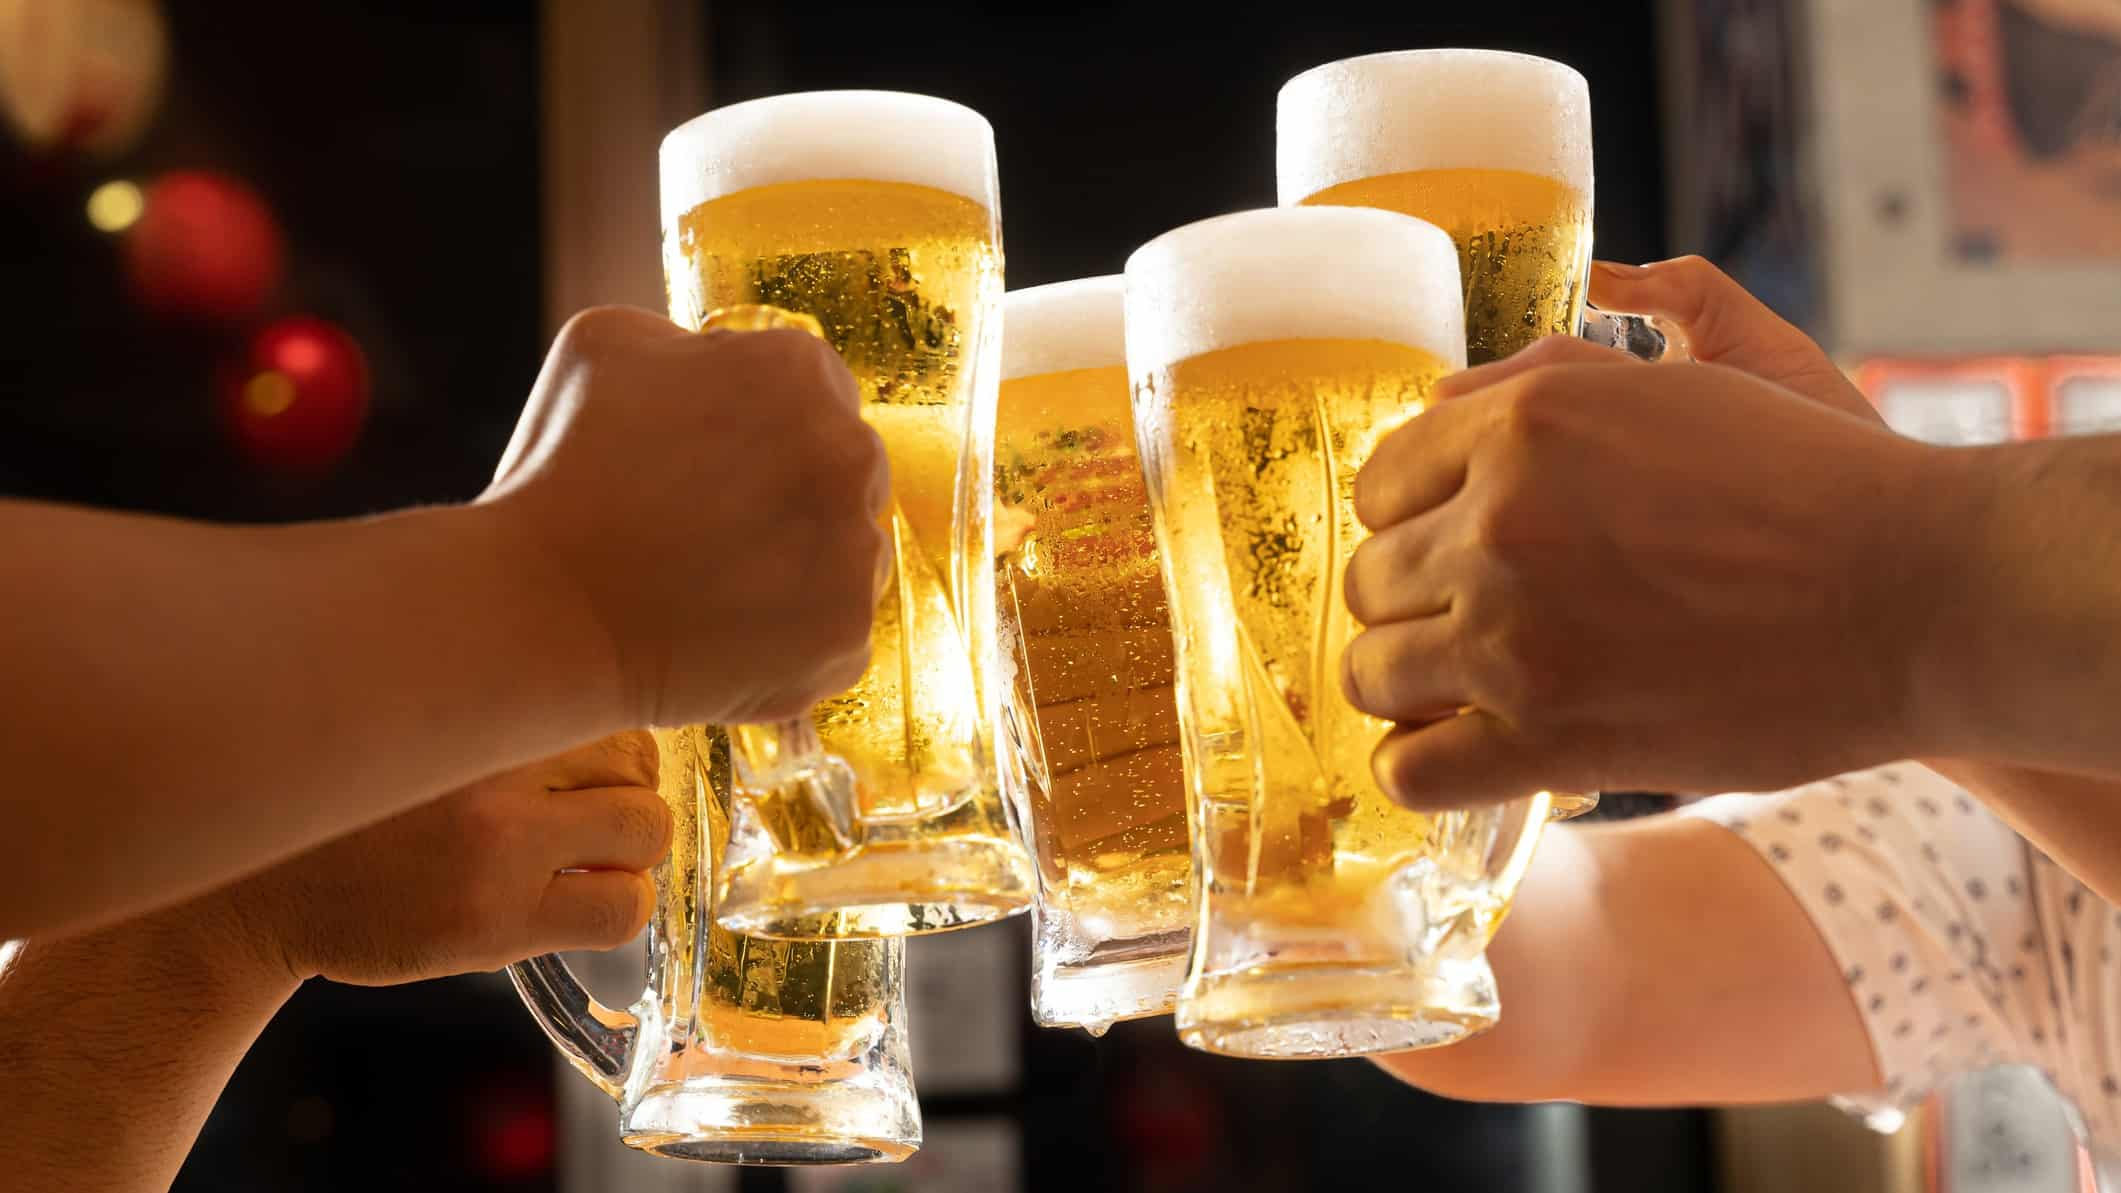 hospitality asx share price represented by people putting beer glasses together in cheers